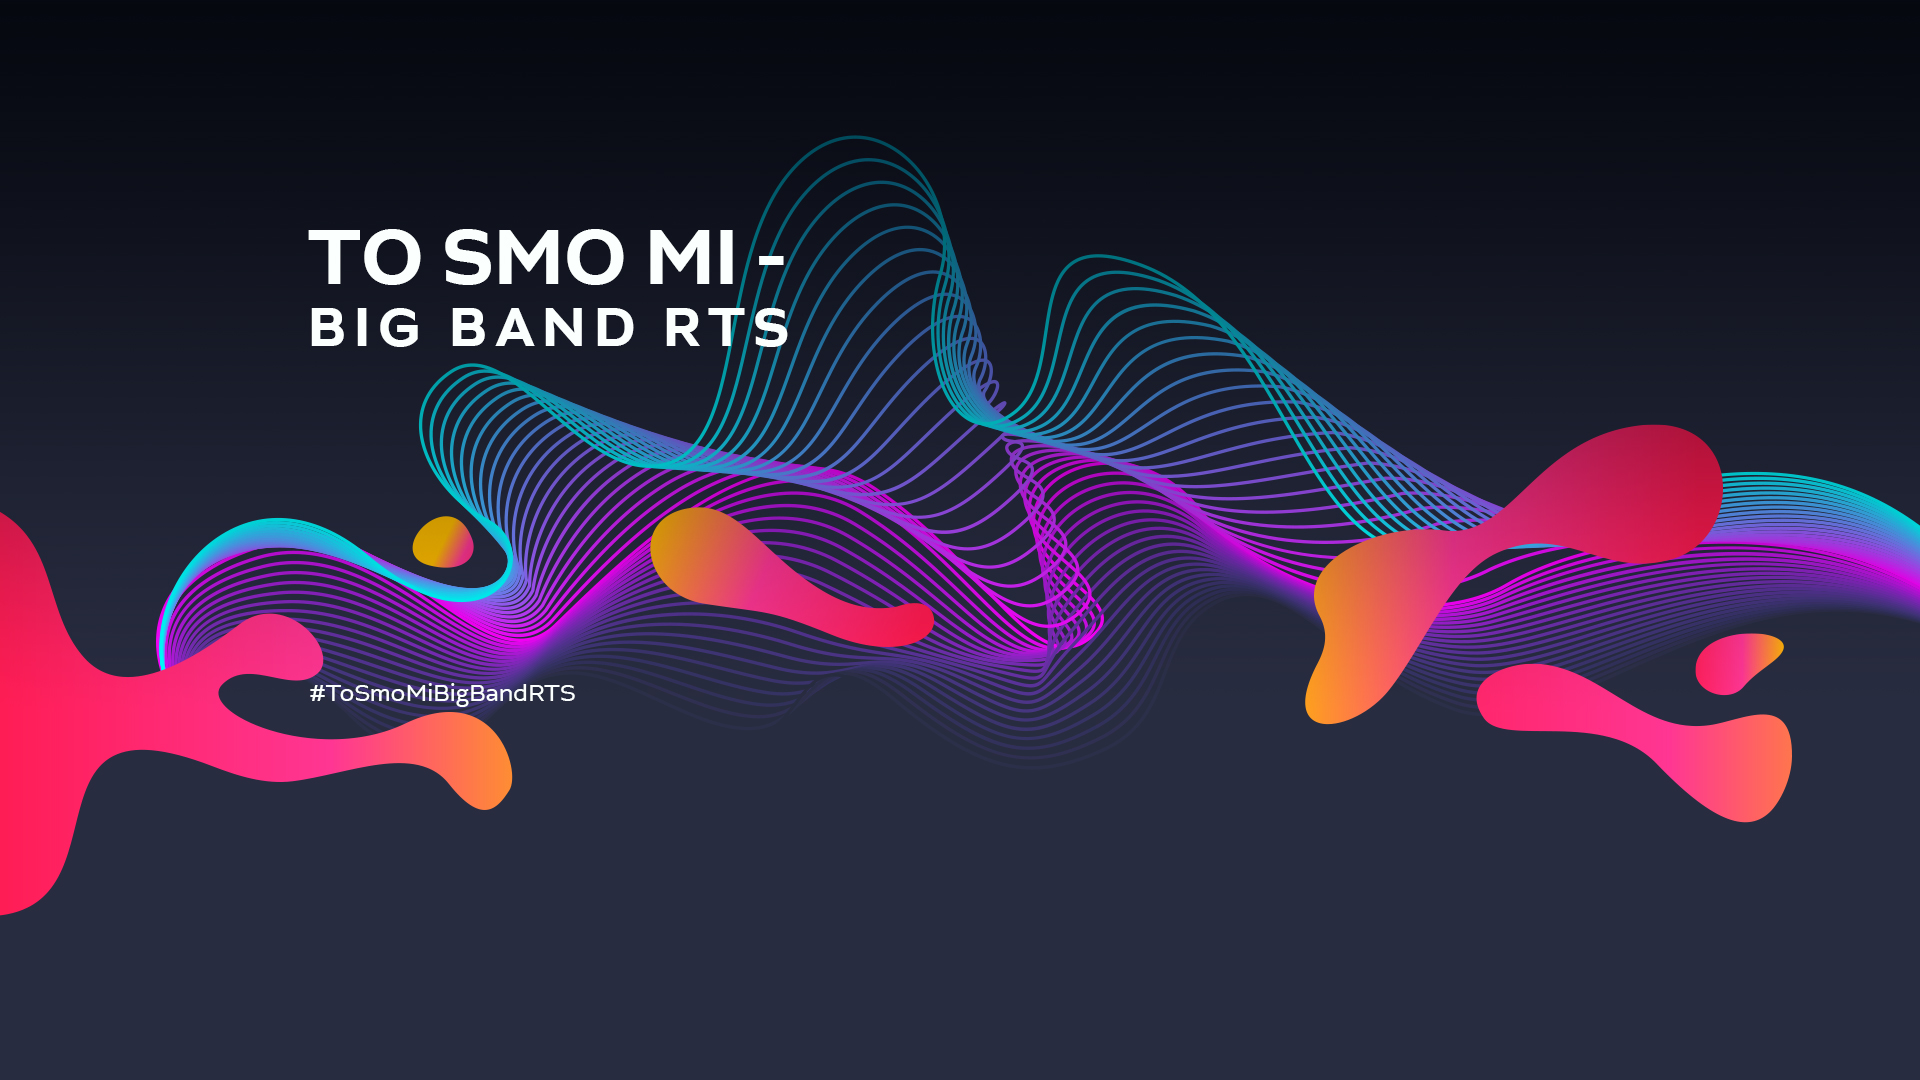 TO SMO MI - BIG BEND RTS